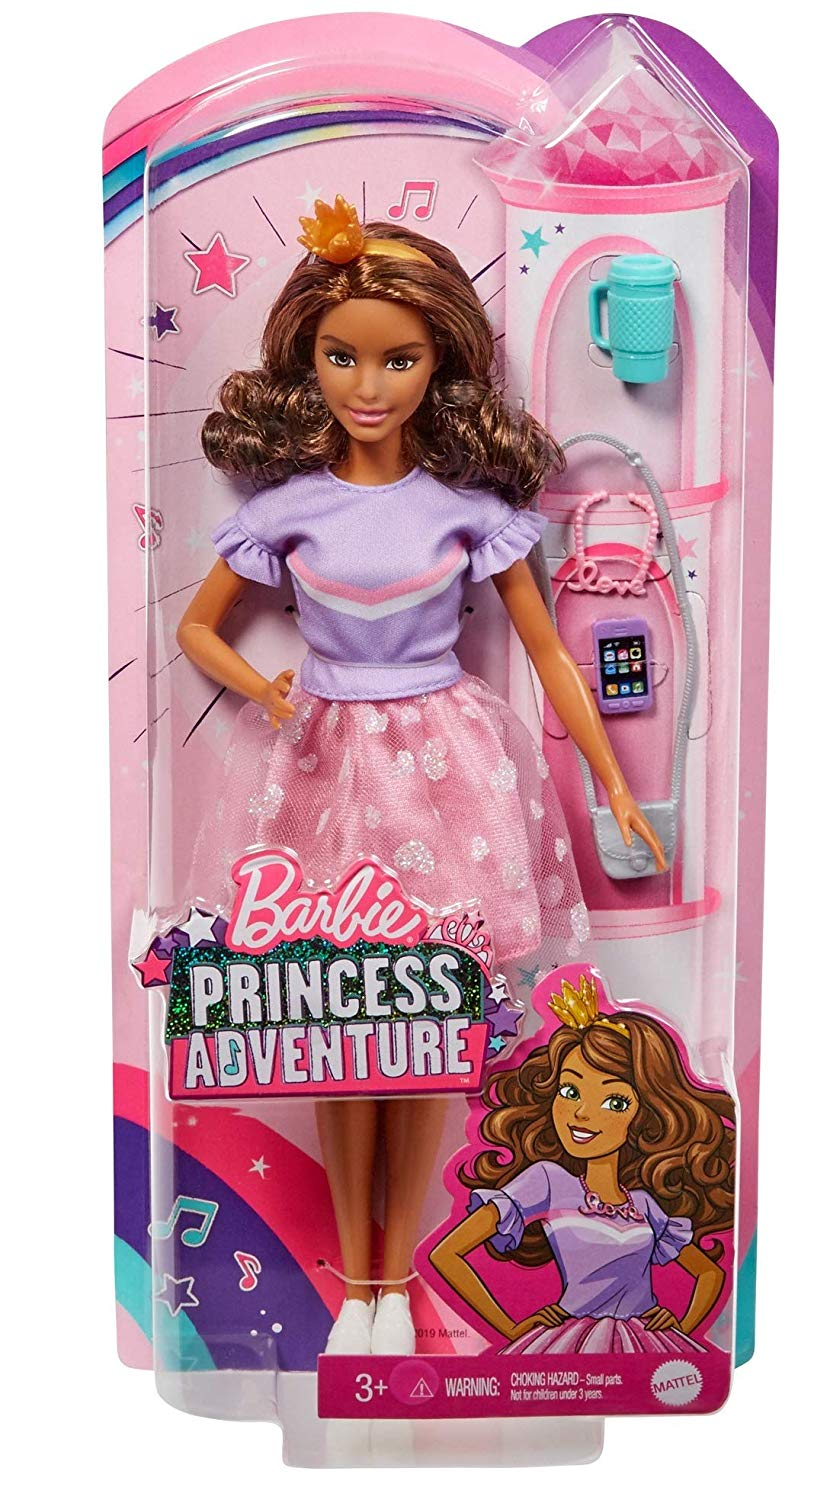 Barbie Princess Adventure new doll